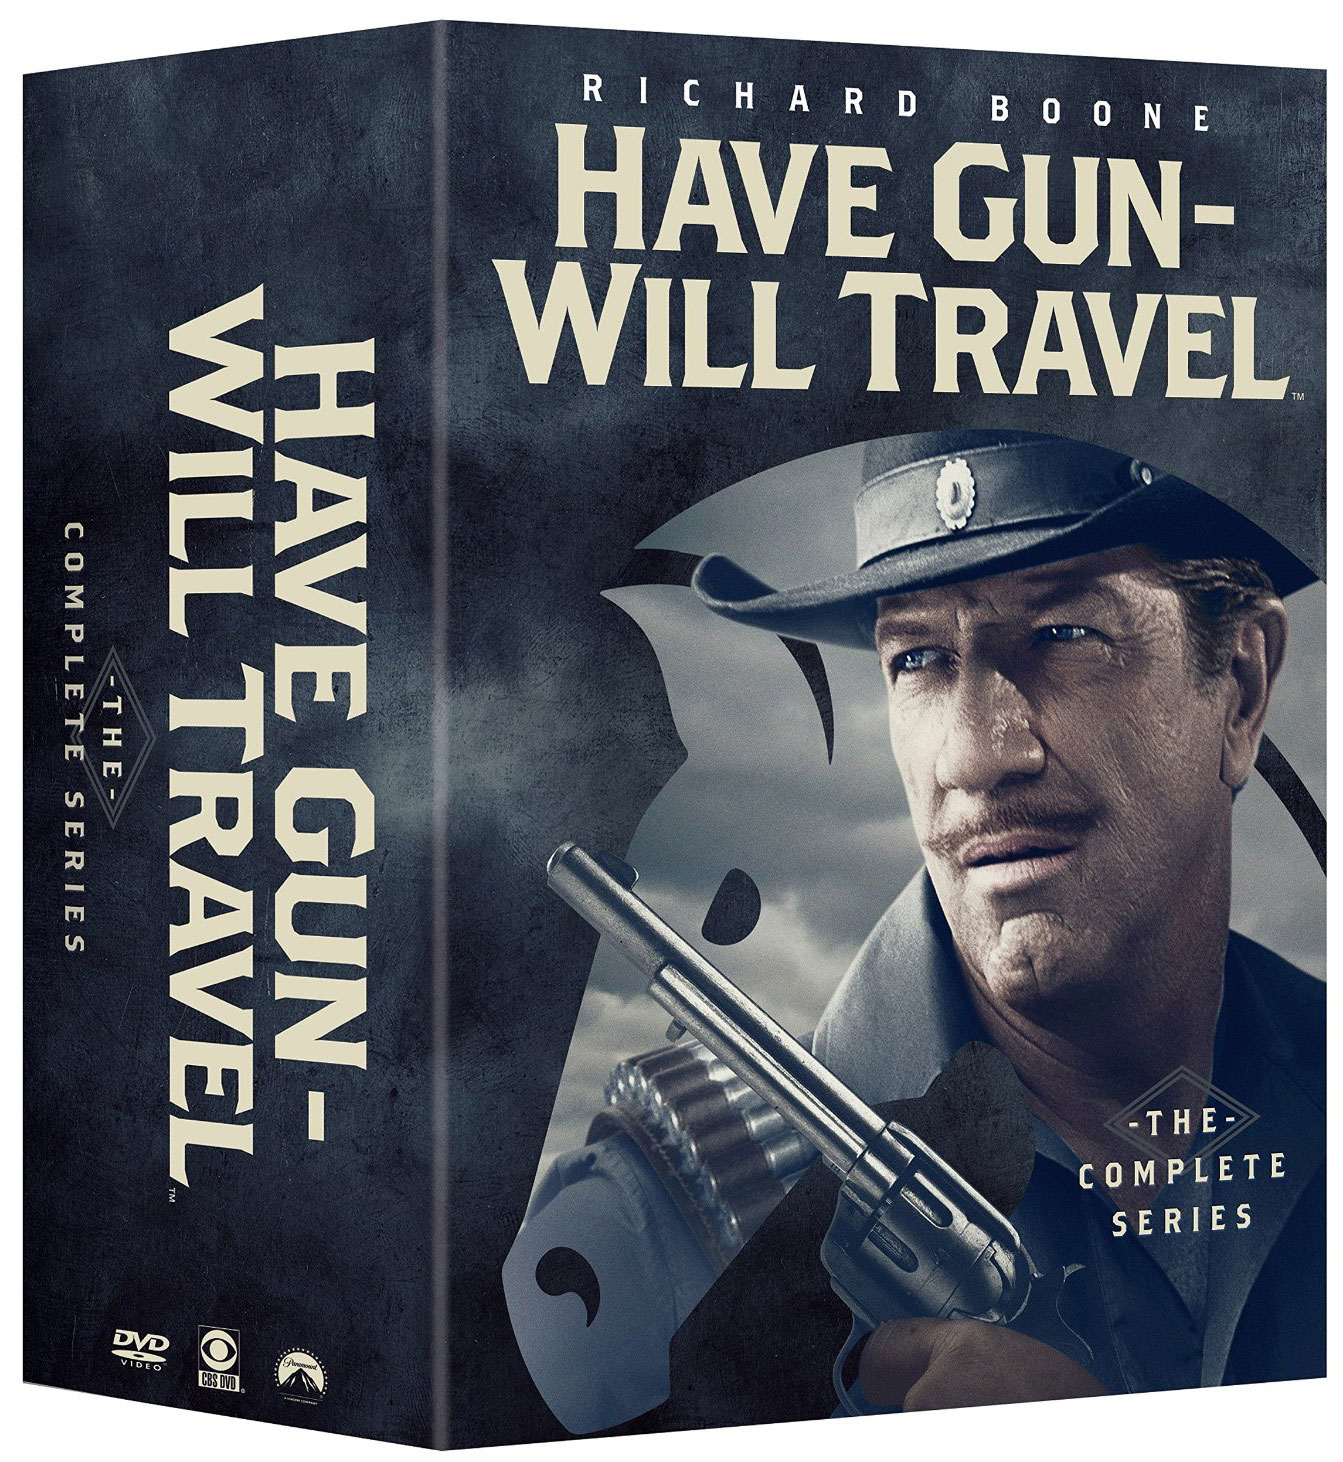 Have Gun, Will Travel: The Complete Series